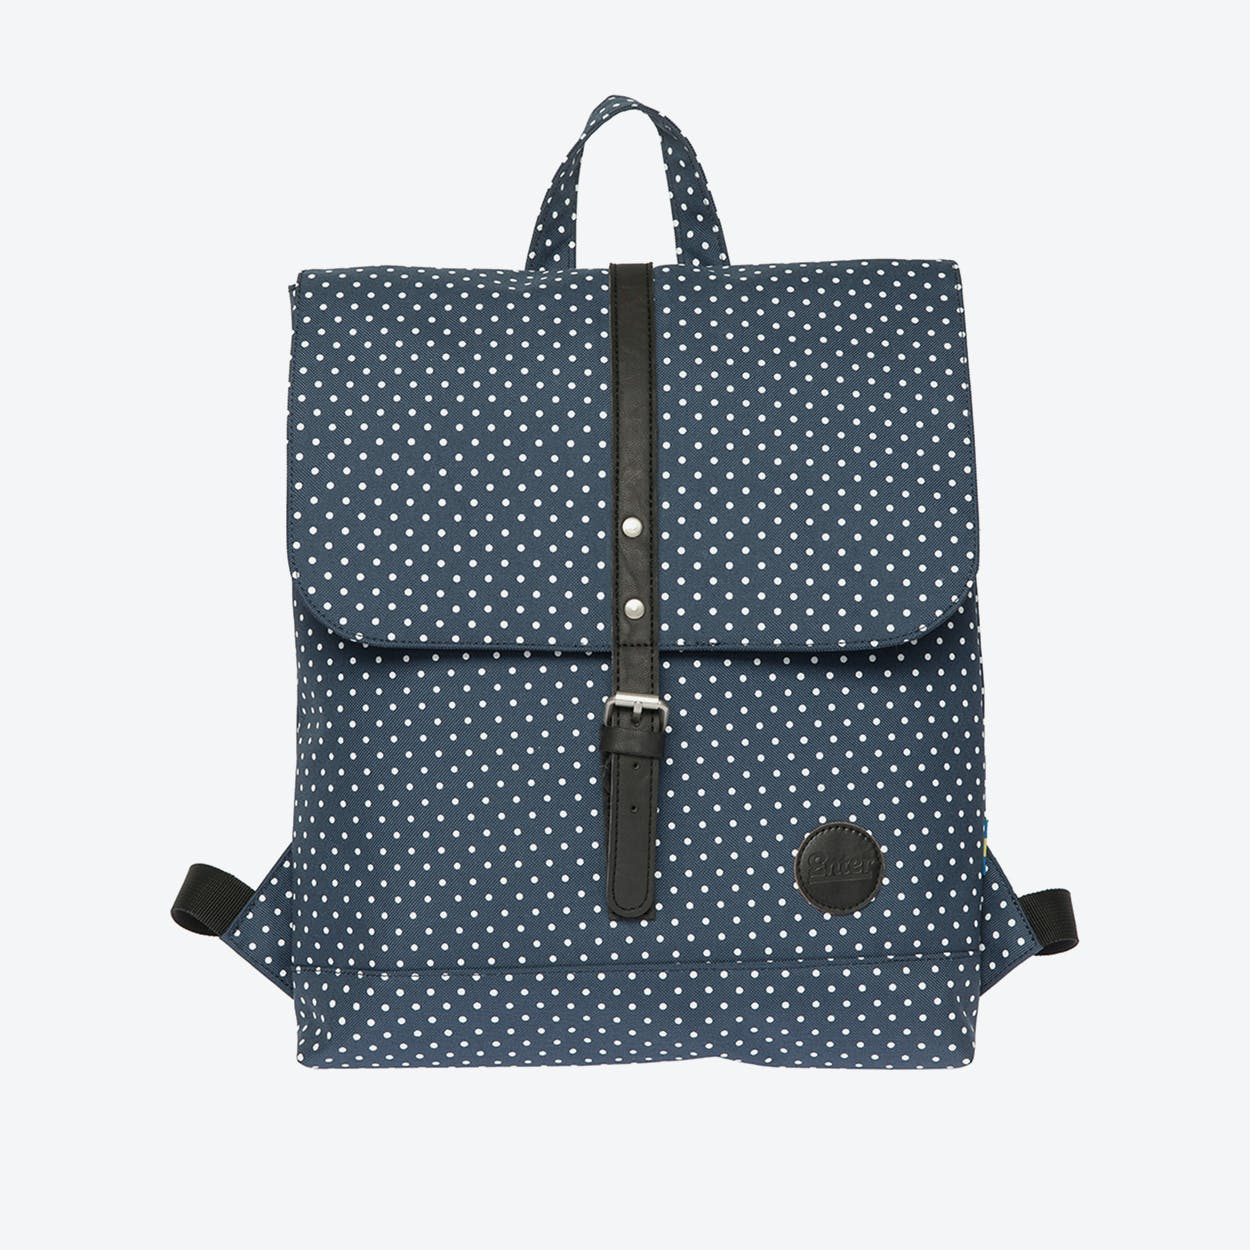 Backpack Mini - Navy/White Polkadot